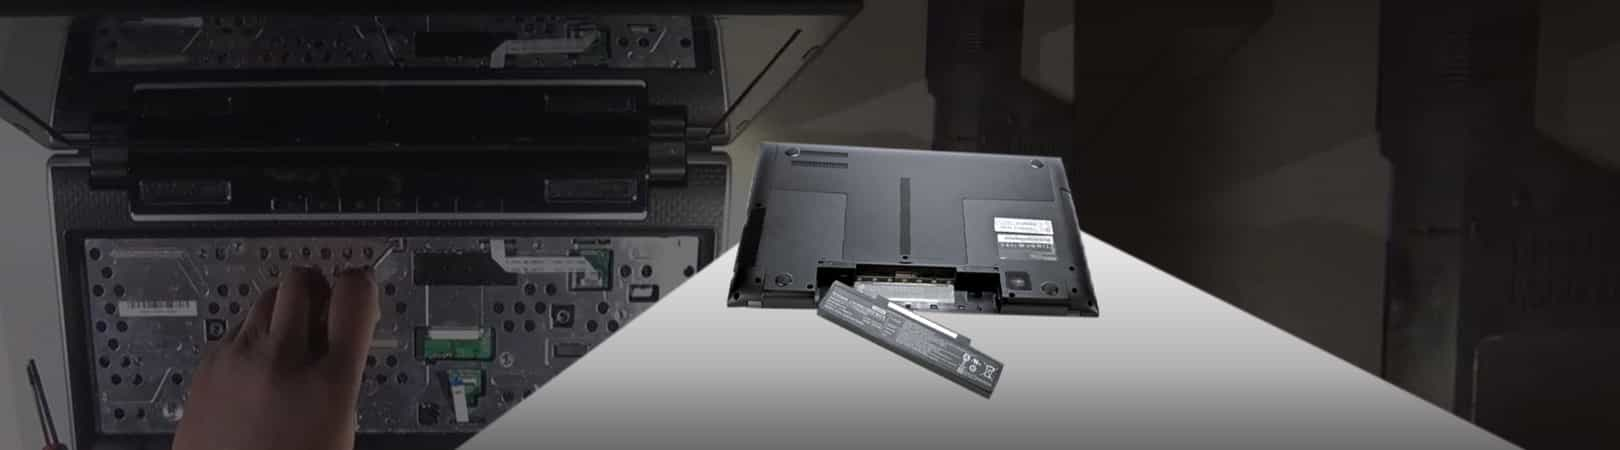 banner image - Samsung Laptop Battery Replacement